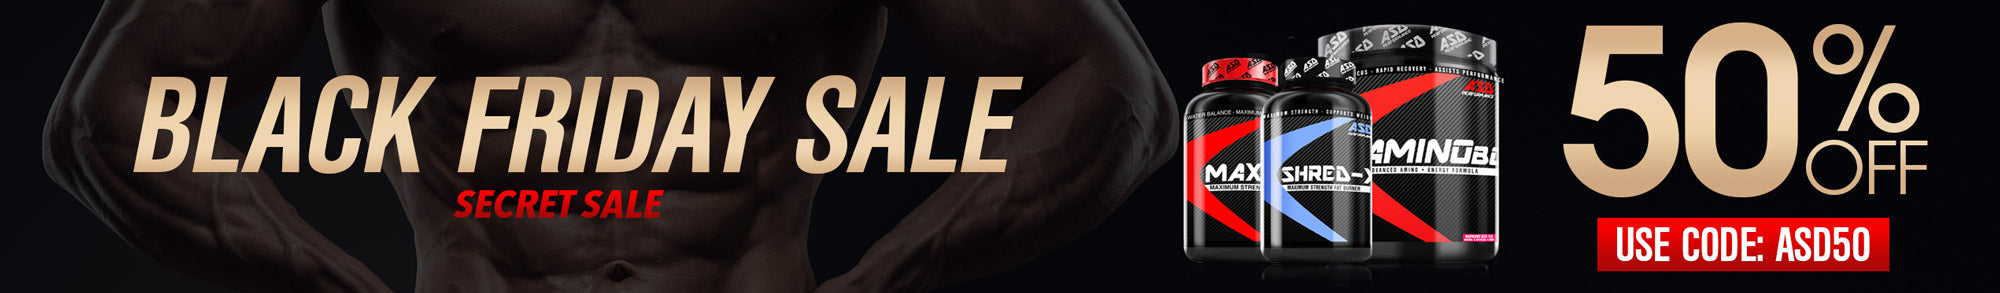 Supplement coupon code, protein, pre workout, BCAA, bodybuilding supplements